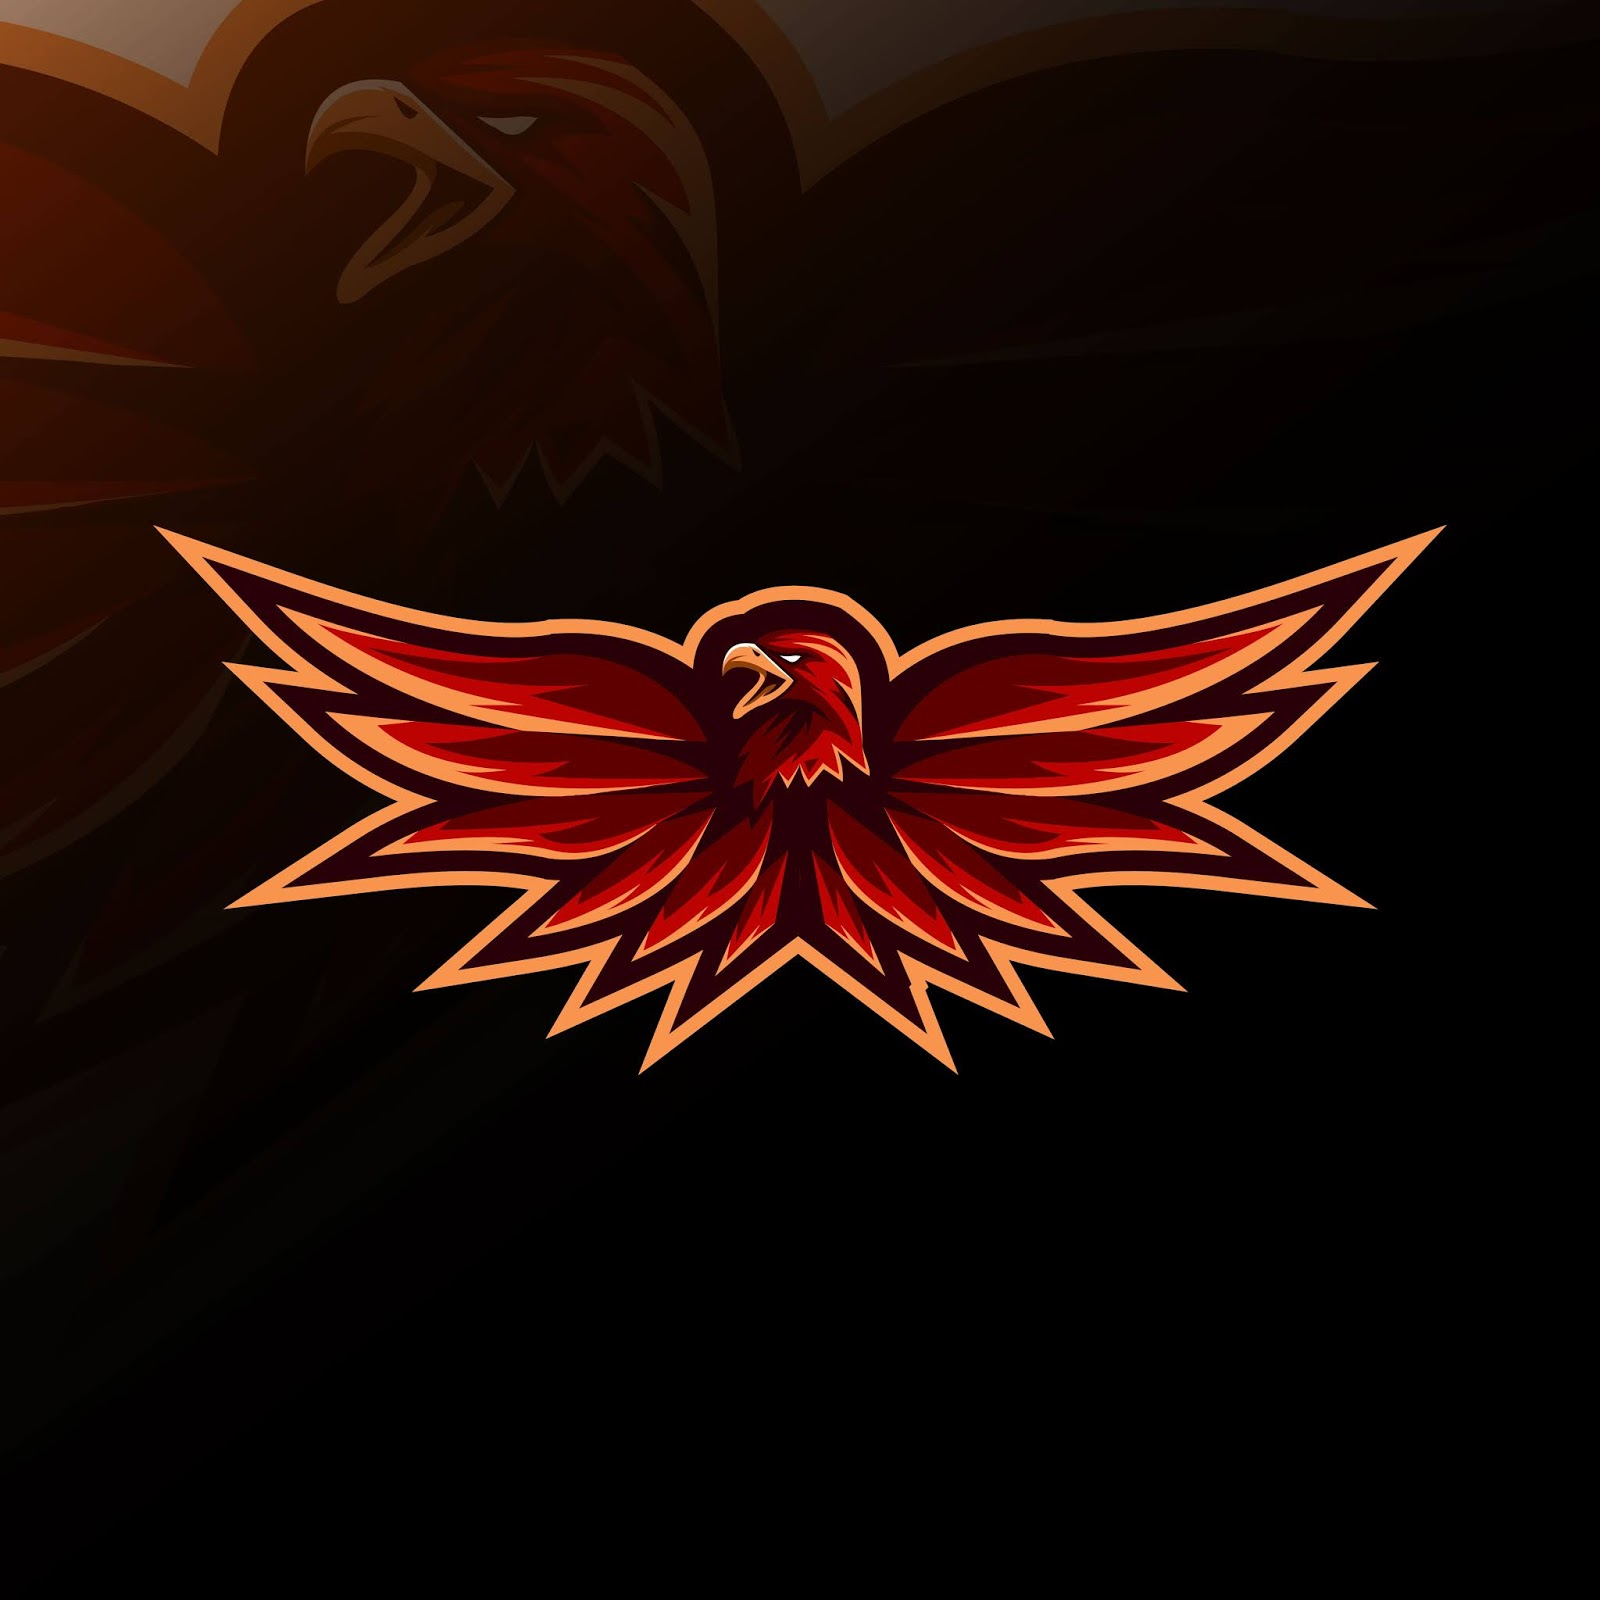 Red Eagle Mascot Logo E Sport Design Free Download Vector CDR, AI, EPS and PNG Formats